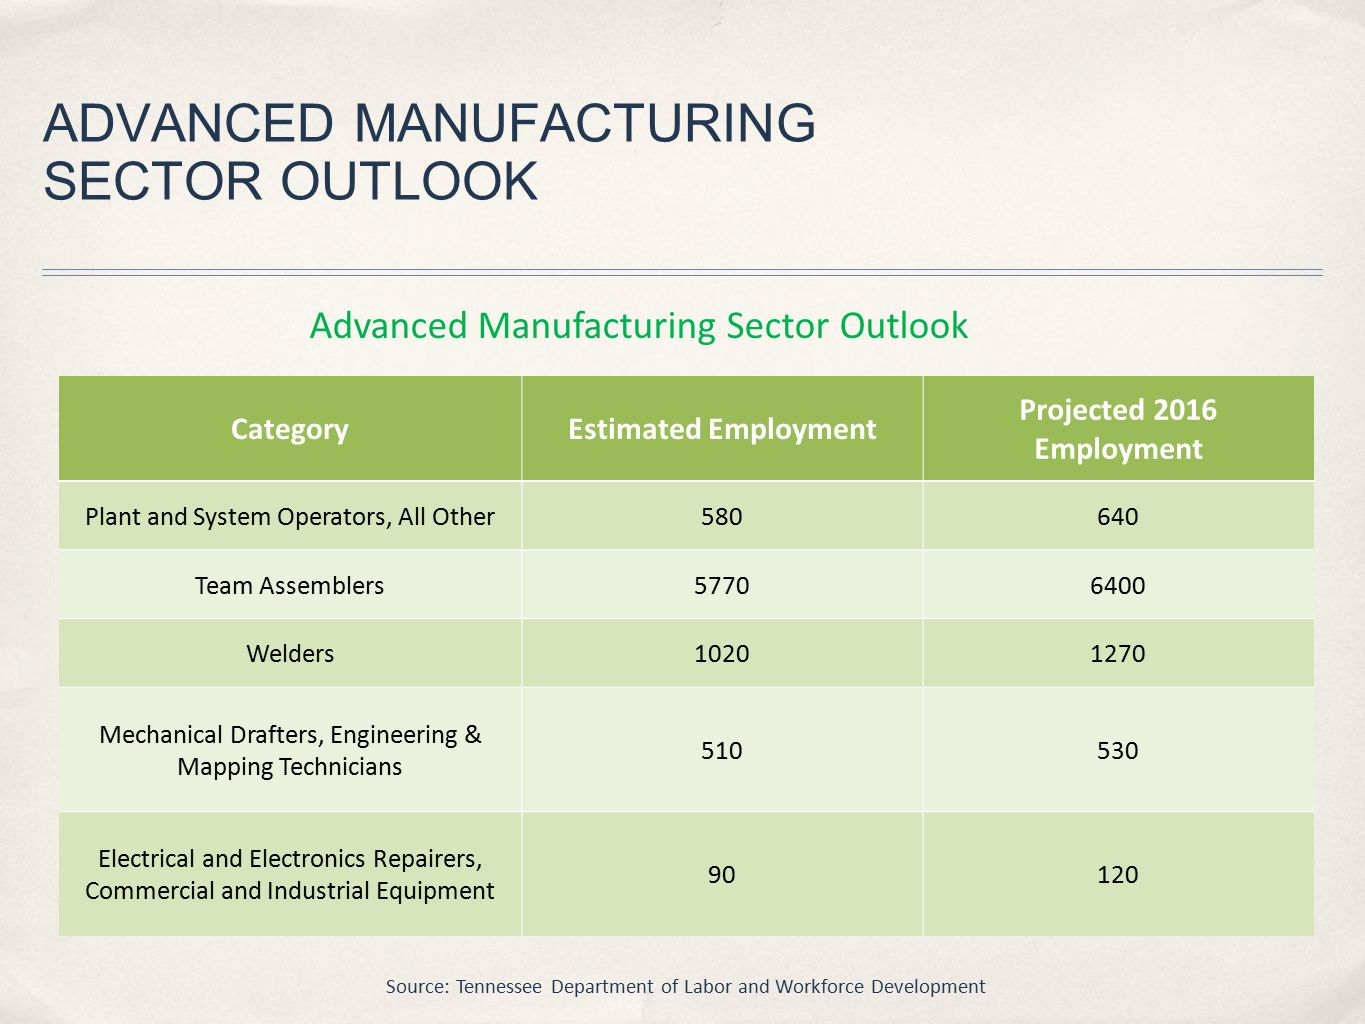 ADVANCED MANUFACTURING SECTOR OUTLOOK CategoryEstimated Employment Projected 2016 Employment Plant and System Operators, All Other580640 Team Assemblers57706400 Welders10201270 Mechanical Drafters, Engineering & Mapping Technicians 510530 Electrical and Electronics Repairers, Commercial and Industrial Equipment 90120 Advanced Manufacturing Sector Outlook Source: Tennessee Department of Labor and Workforce Development